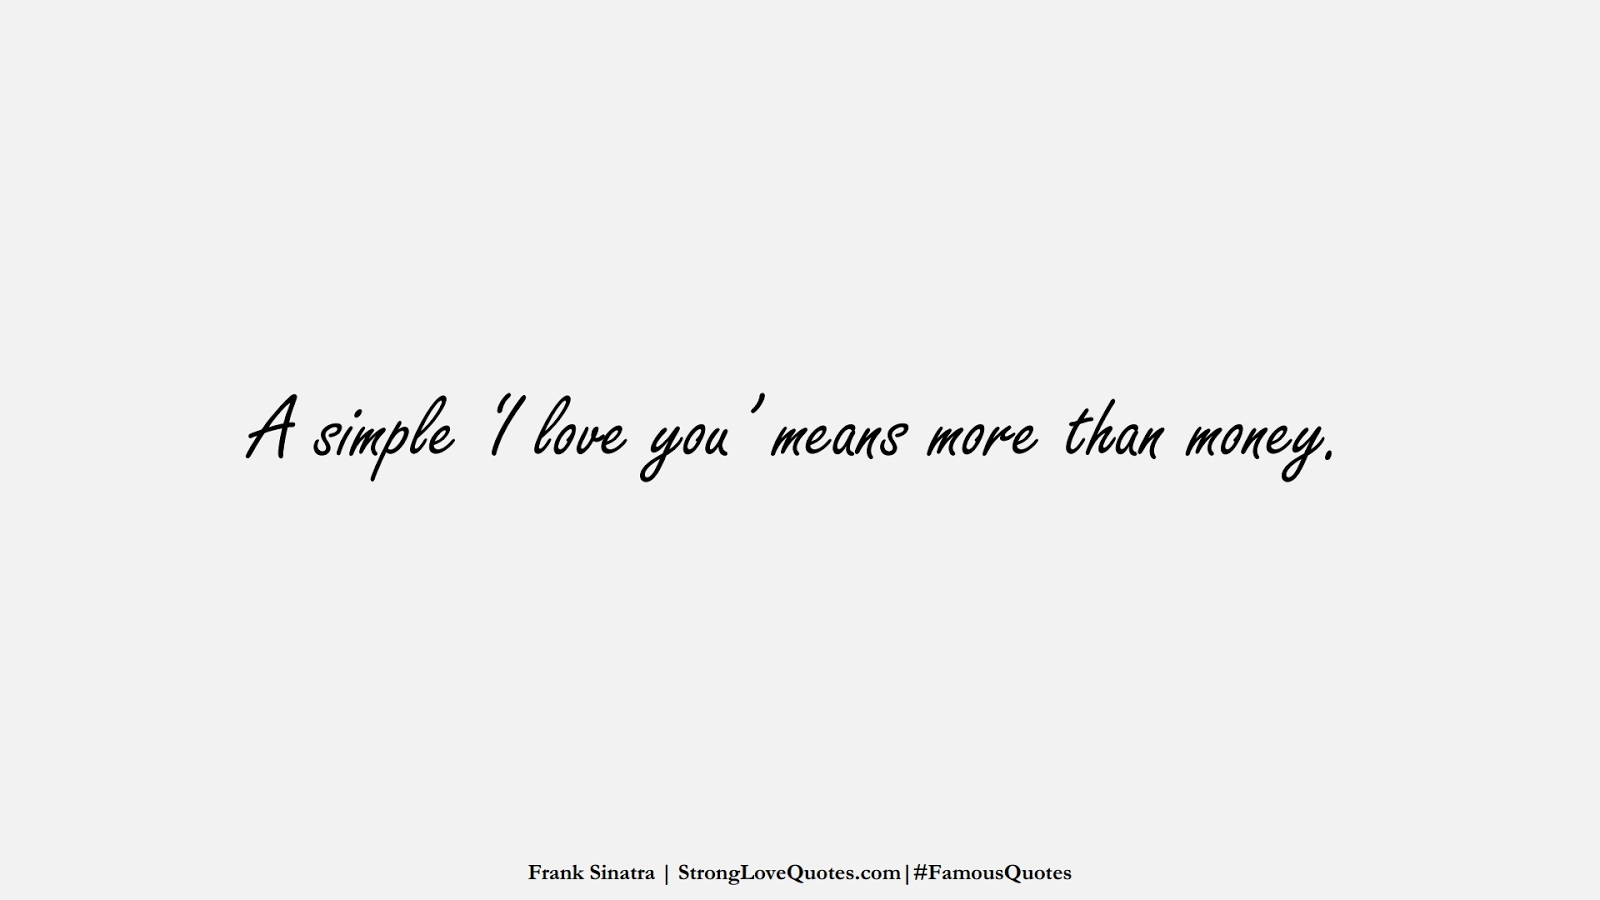 A simple 'I love you' means more than money. (Frank Sinatra);  #FamousQuotes